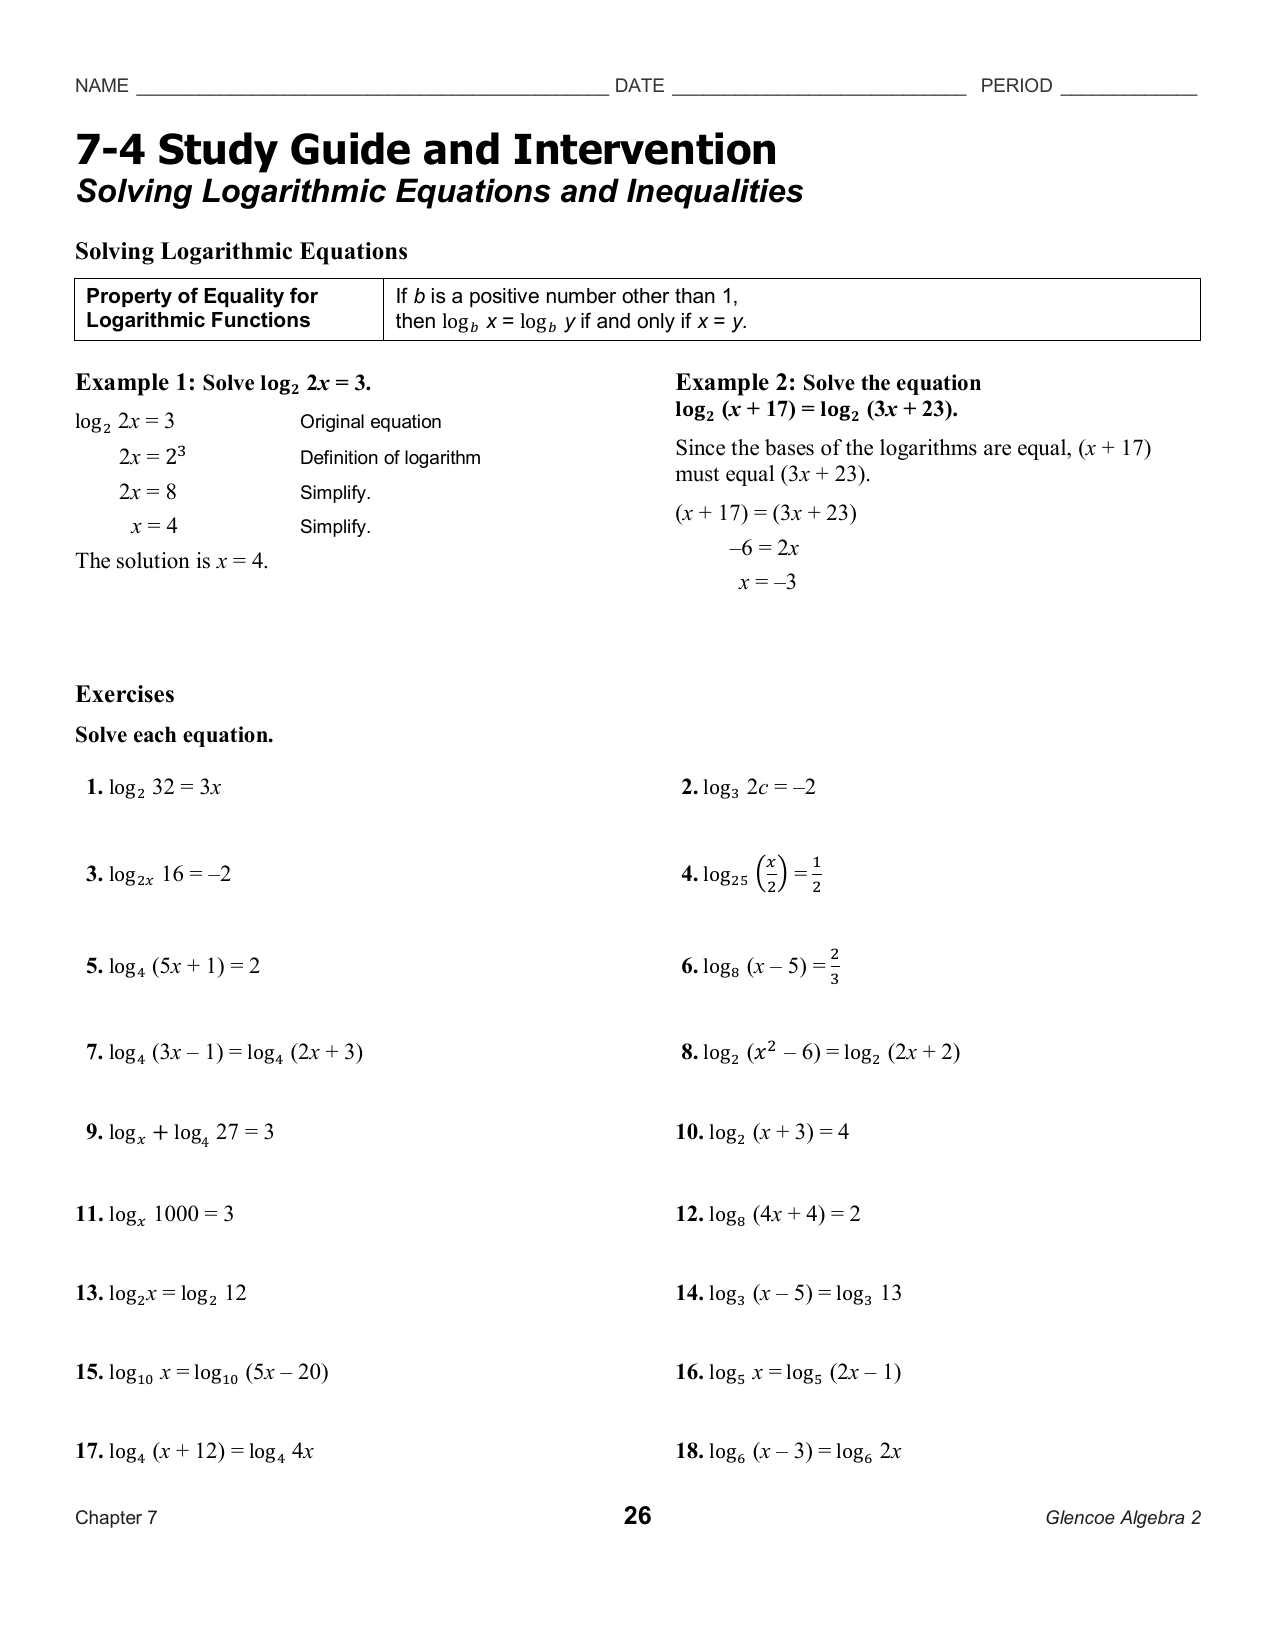 7-4 Study Guide And Intervention Solving Logarithmic Equations